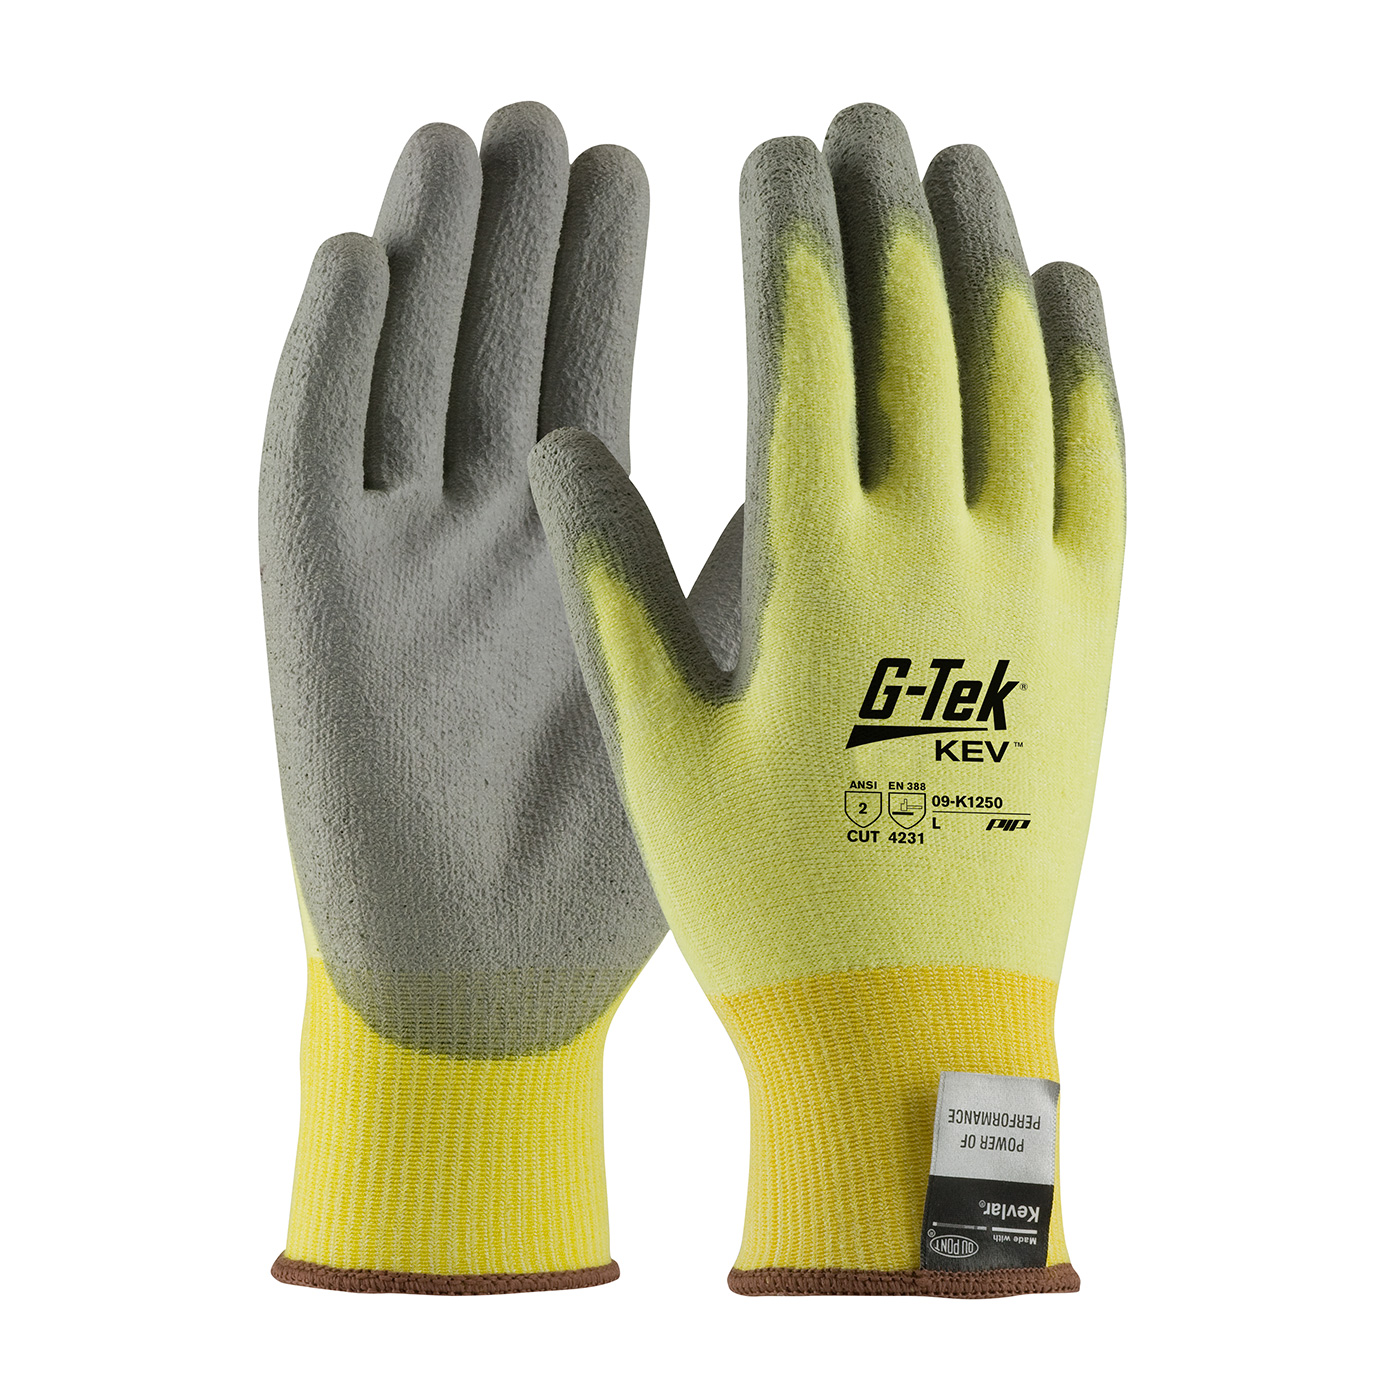 09K1250 PIP G-Tek™ Polyurethane Coated Kevlar® Cut-Resistant Protective Work Gloves. Cut level 2.